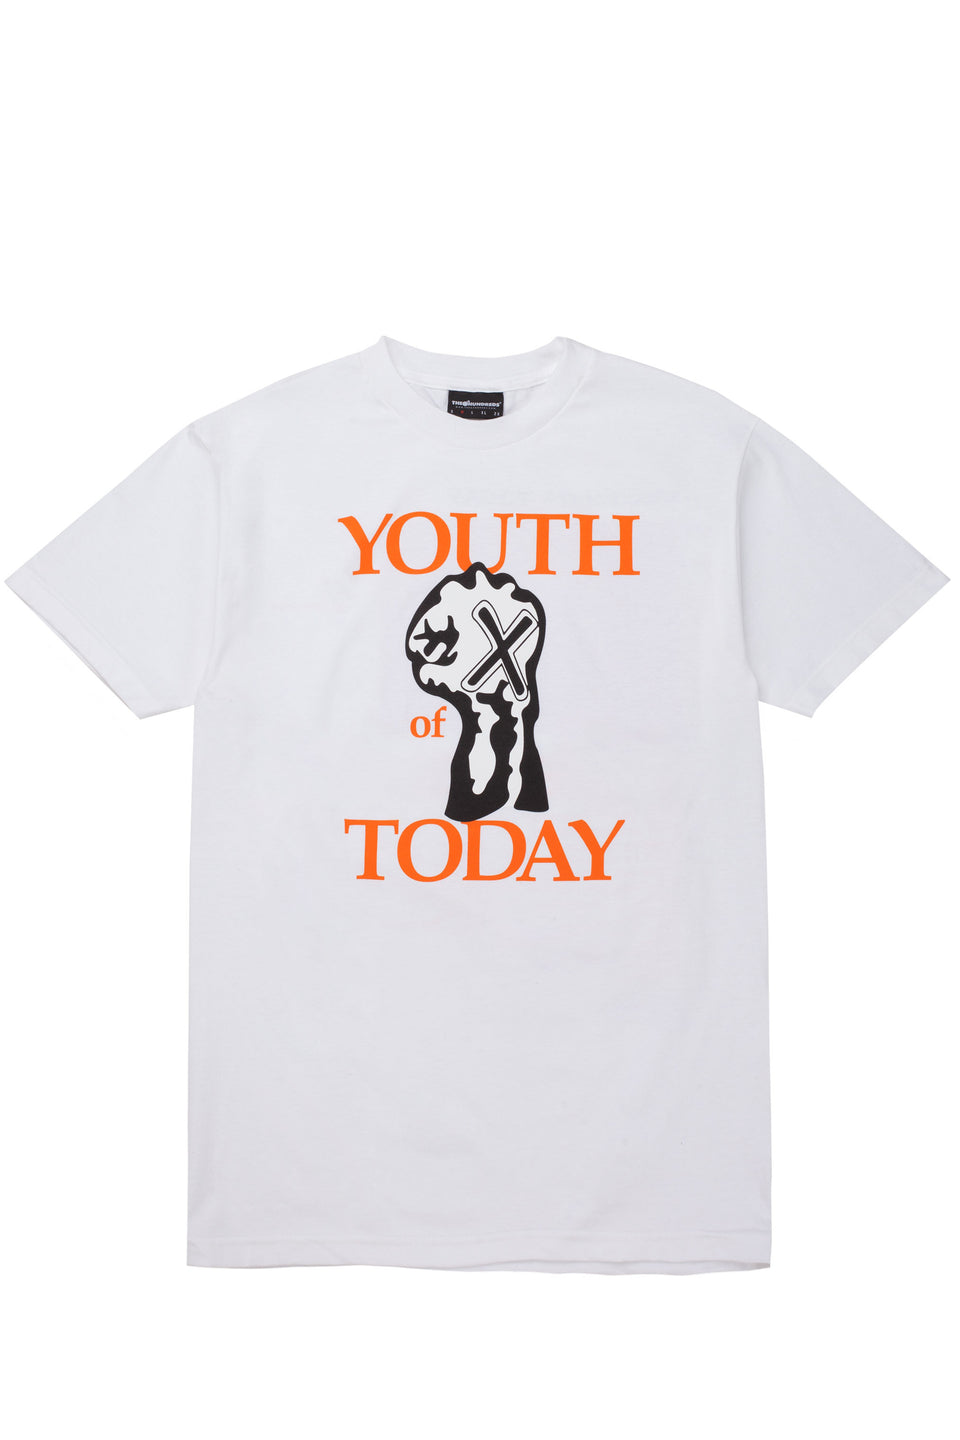 Youth Of Today T-Shirt